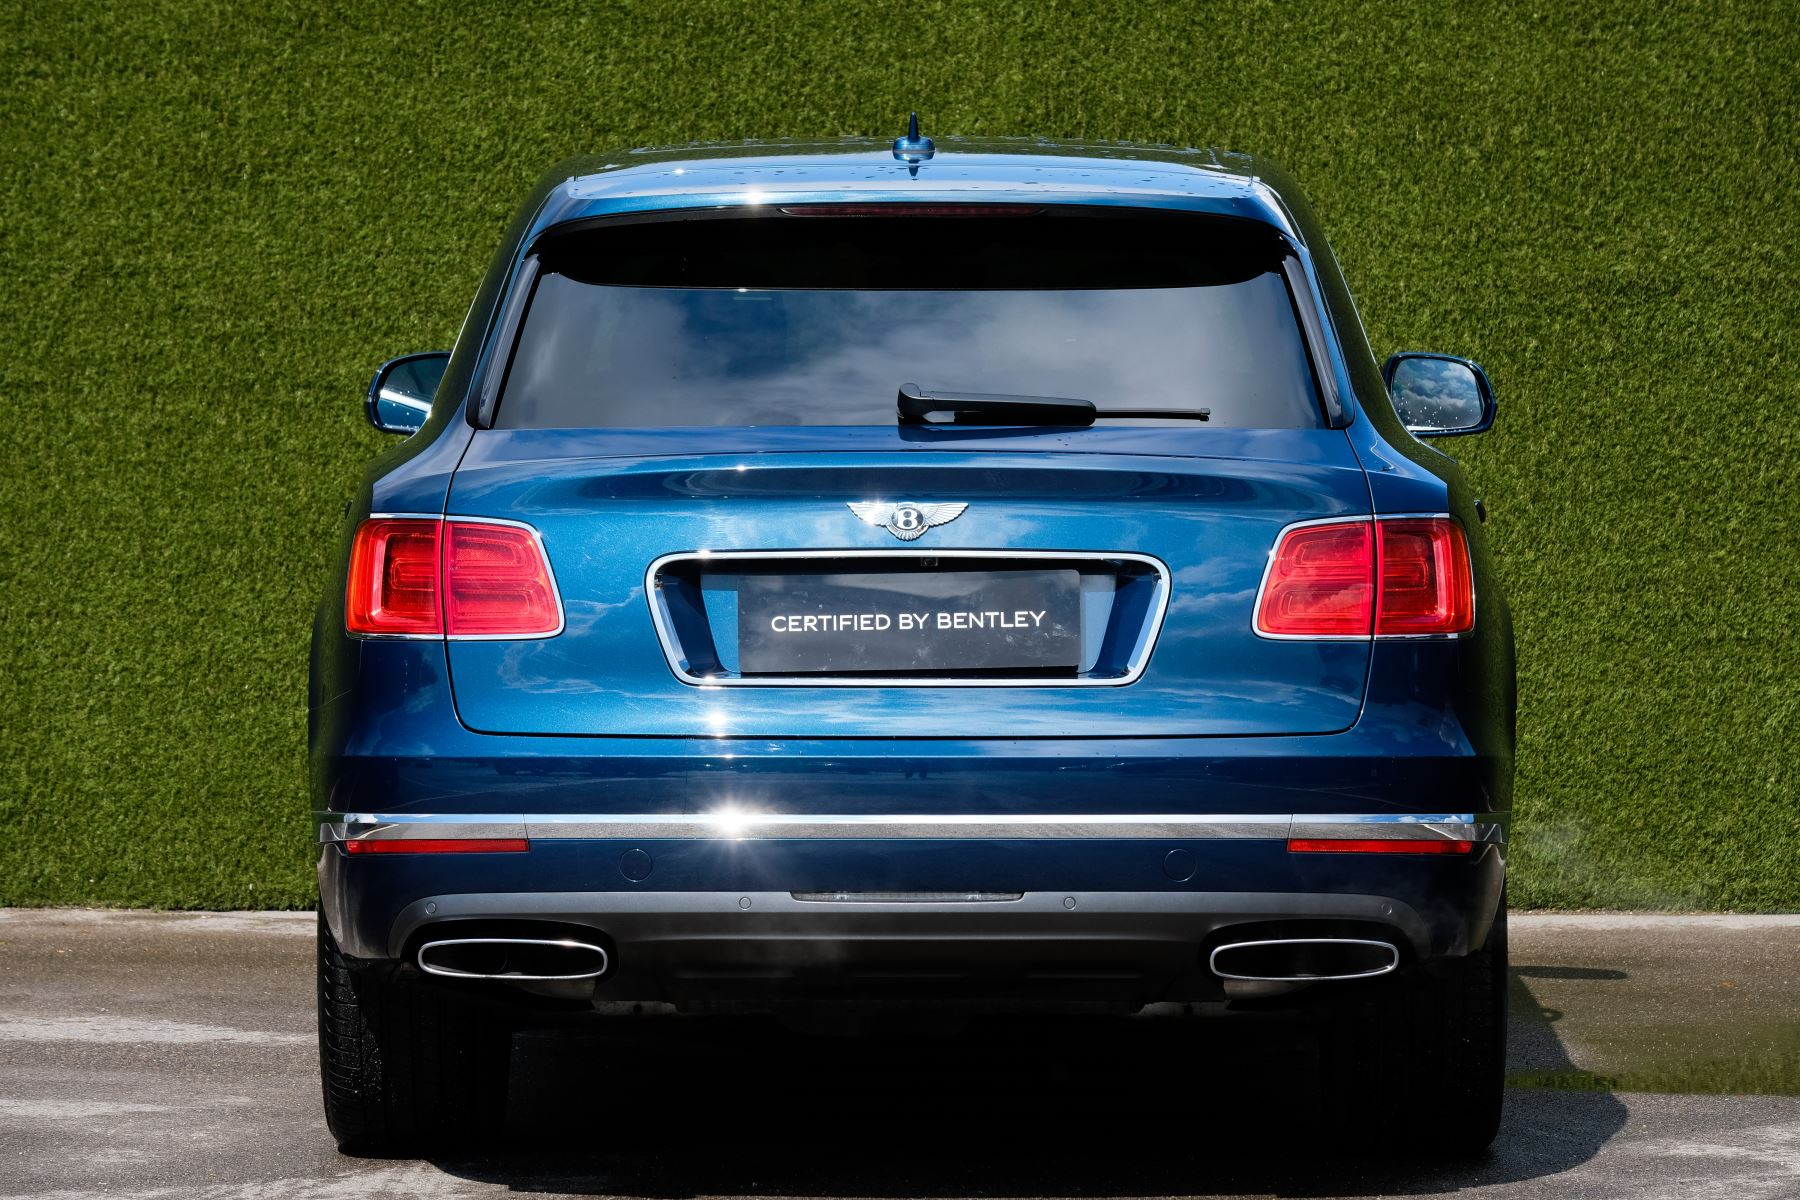 Bentley Bentayga 6.0 W12 - All Terrain, Sunshine, City and Touring Specification image 5